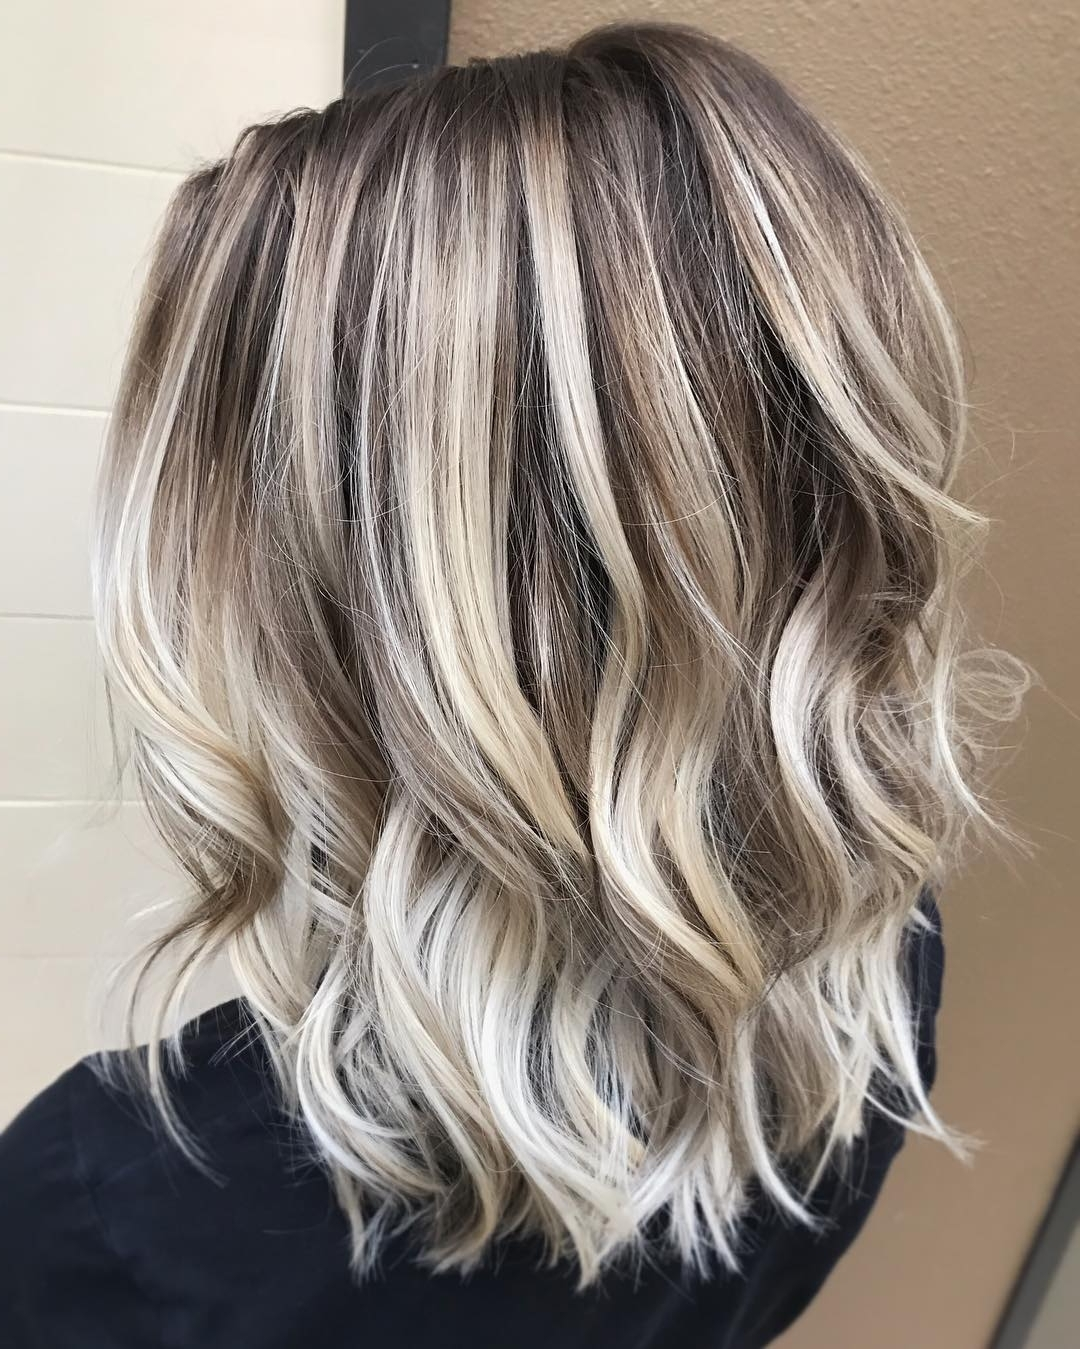 2017 Multi Tonal Mid Length Blonde Hairstyles Within 10 Ash Blonde Hairstyles For All Skin Tones, 2018 Best Hair Color Trends (View 6 of 20)